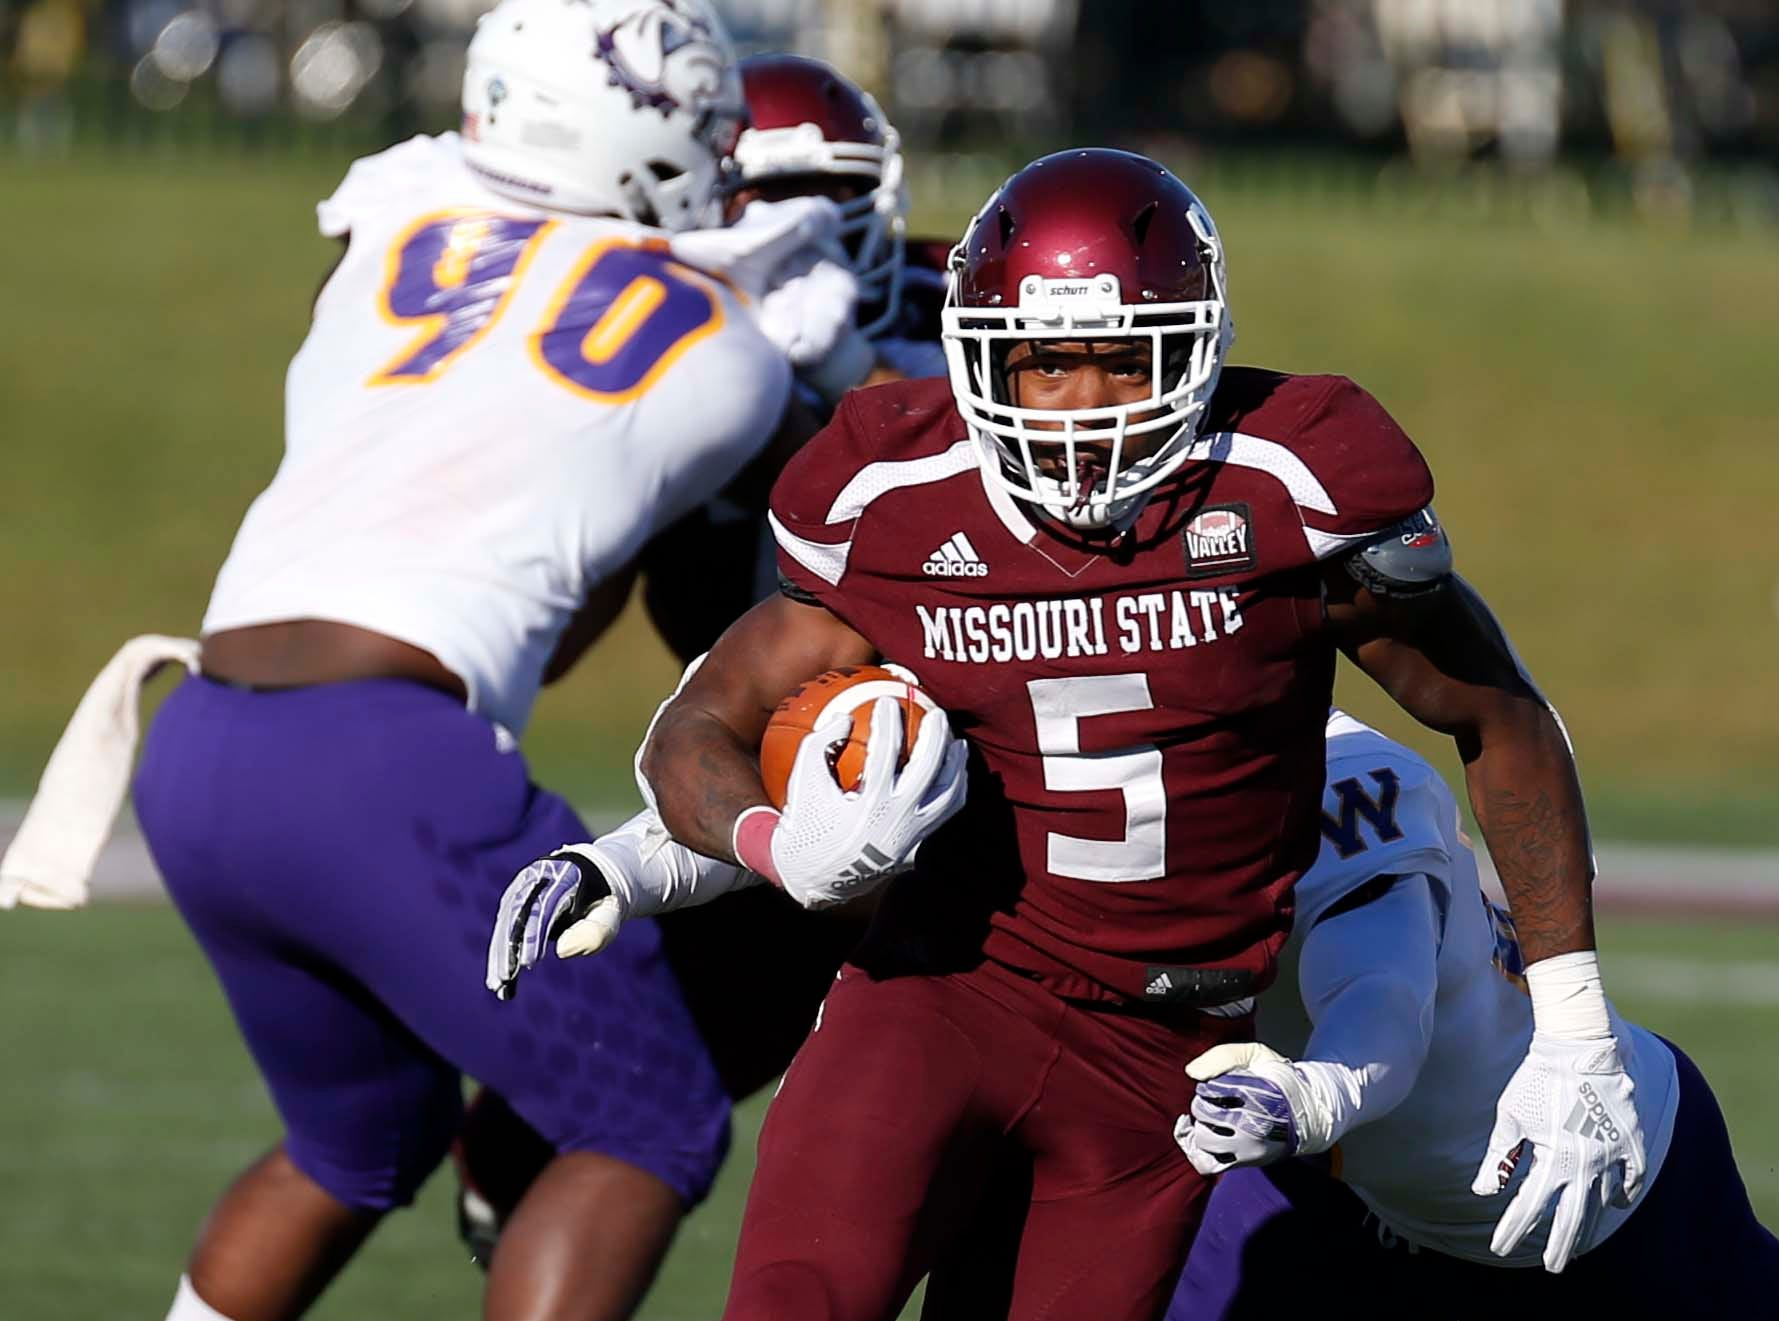 Missouri State against Western Illinois at Plaster Field in Springfield on Oct. 20, 2018.